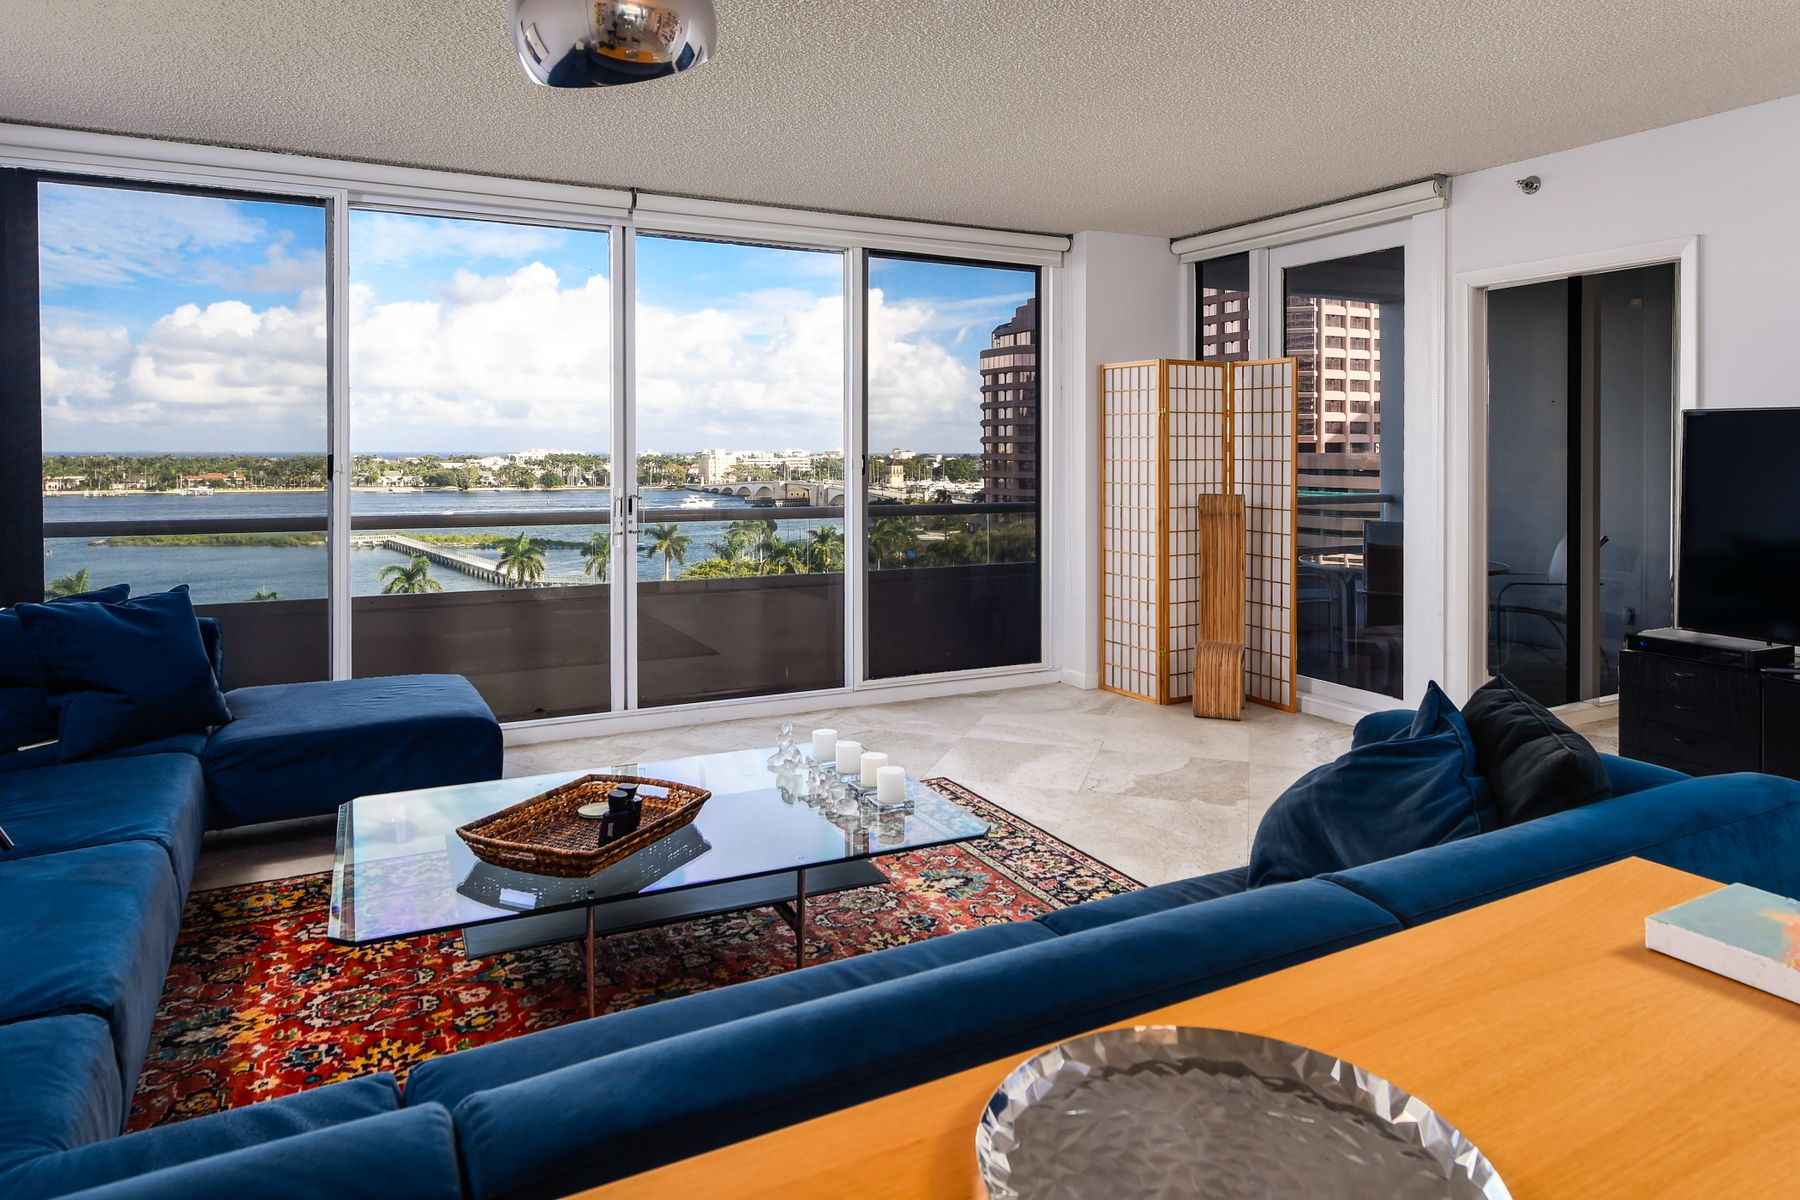 Condominium for Active at Trump Plaza 8F 529 S Flagler Dr Apt 8F West Palm Beach, Florida 33401 United States